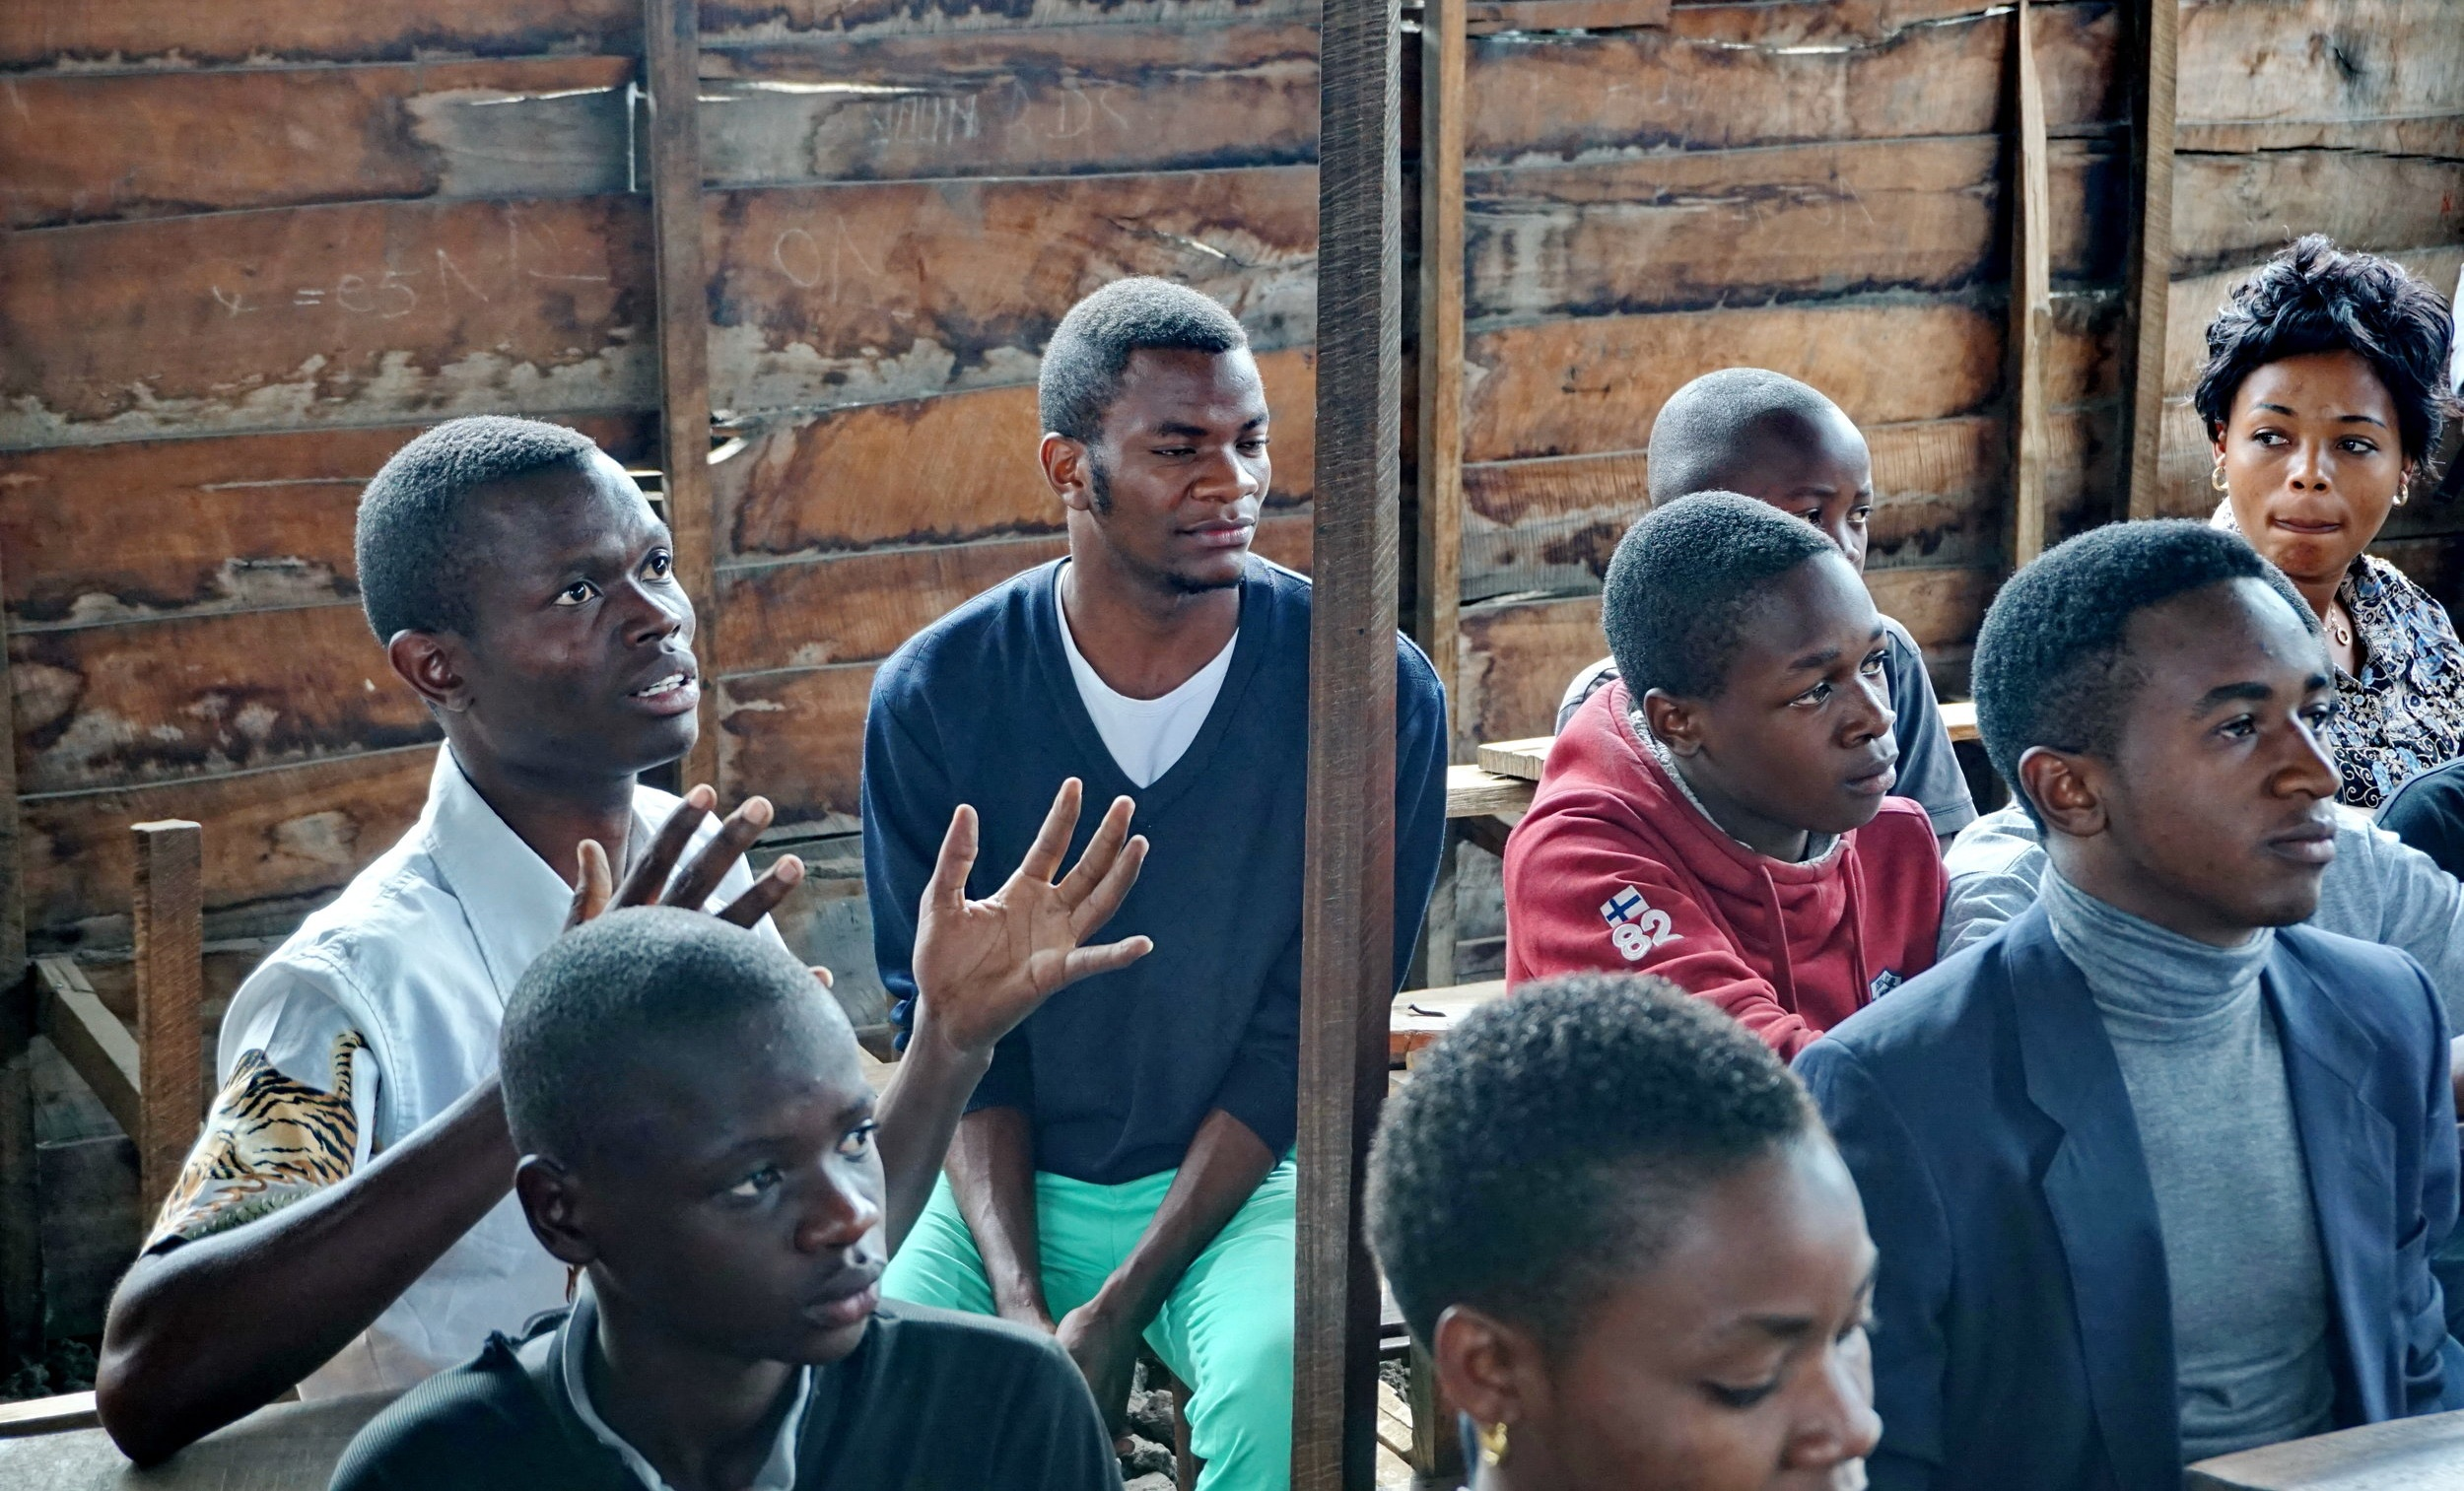 Africa New Day is changing the Congo through empowerment. Our approach follows three simple principles: - 1: Empower to lead changeAfrica New Day awakens men, women and children to their power as individuals to bring about change.—2: Transform culture at the sourceInstead of waiting for relief to come, Africa New Day proactively reverses the causes of conflict and suffering in their communities.—3: Multiply the impactAfrica New Day participants become mentors who empower the next generation of leaders, creating a solution that sustains.